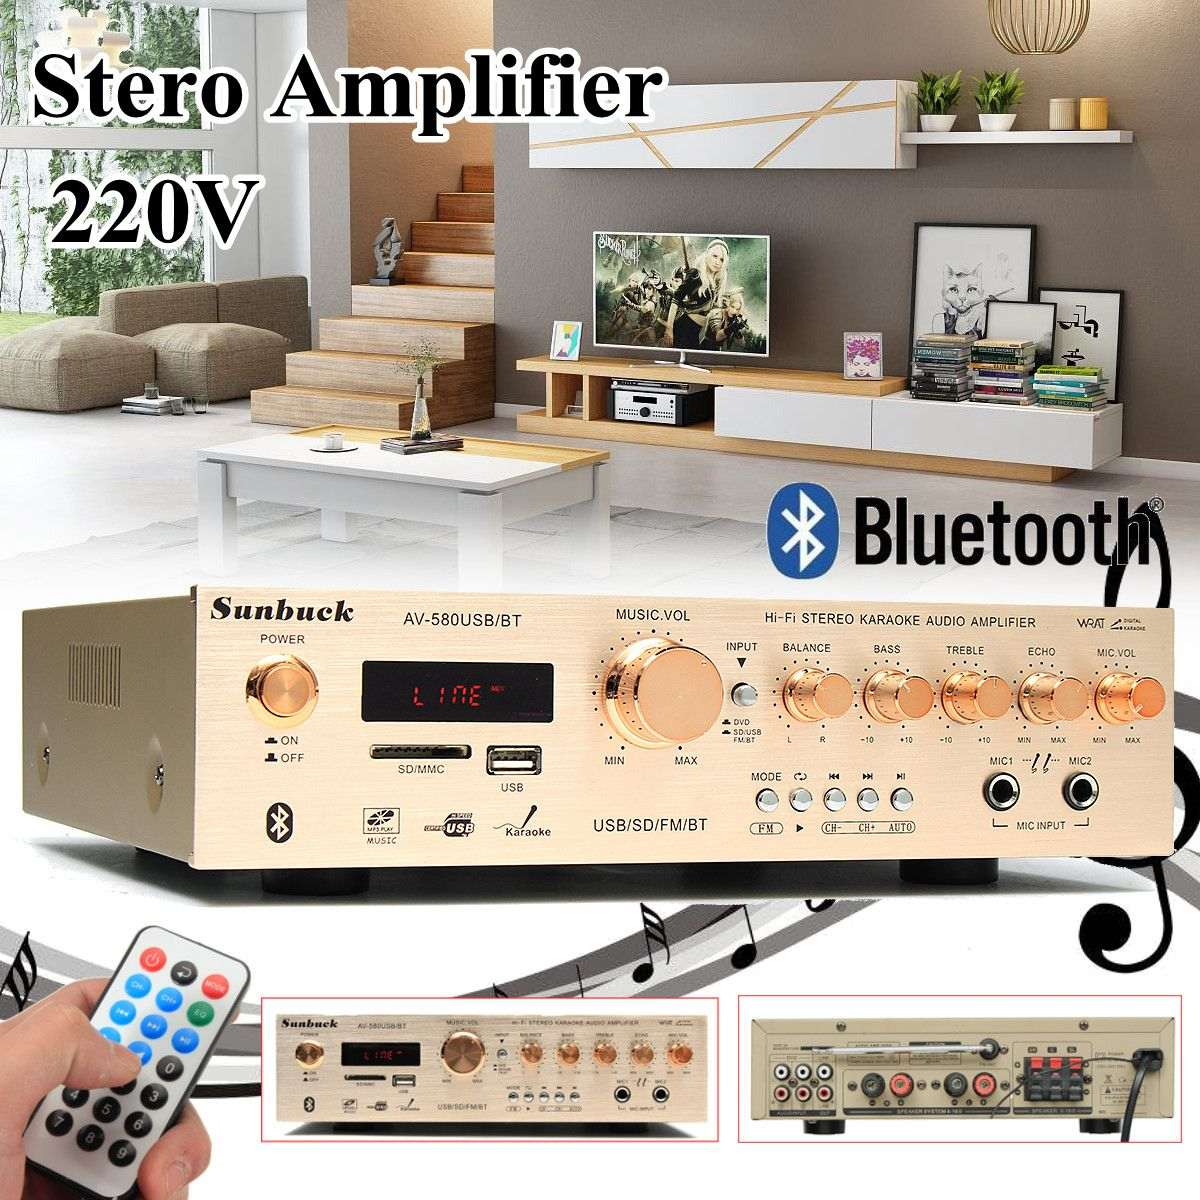 580BT 5CH 220V Stereo Amplifier Sound Mode Audio Music Booster Card Remote Control Built-in Bluetooth Amplifier For home home car cd player 4 channel audio amplifier with remote control and bluetooth function good sound quality